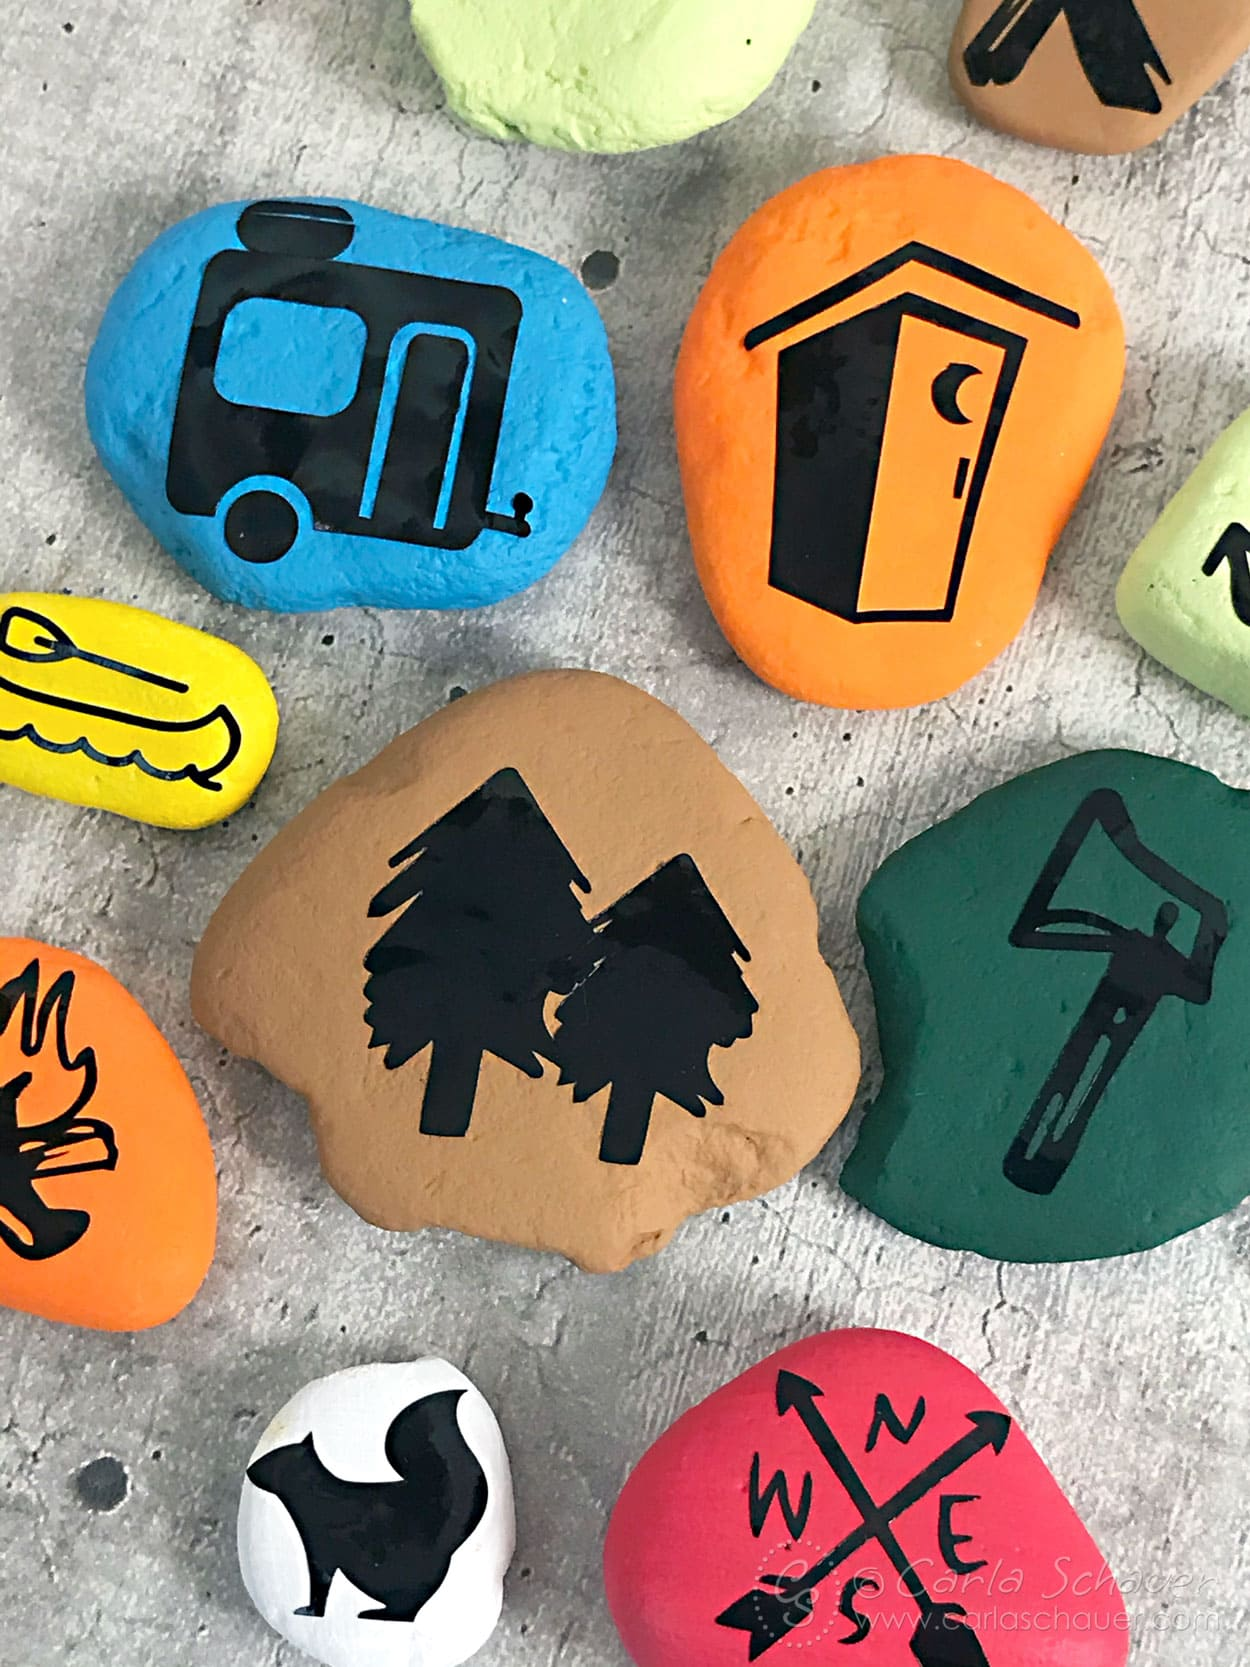 Close up of painted stones with camping icons.